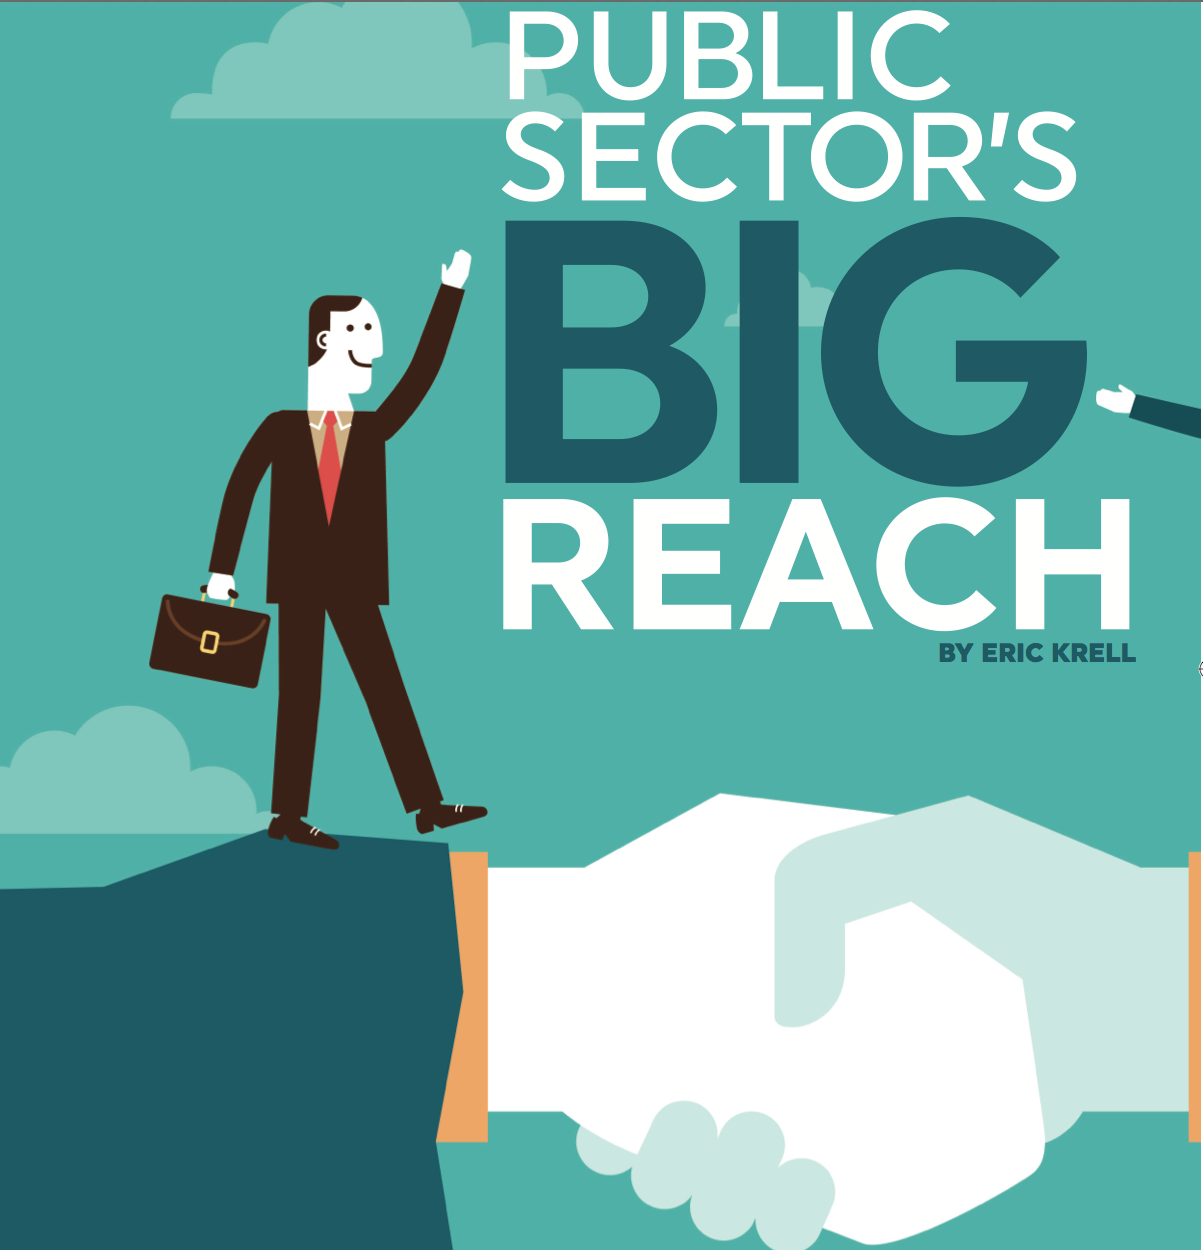 Industry Focus: Public Sector's Big Reach